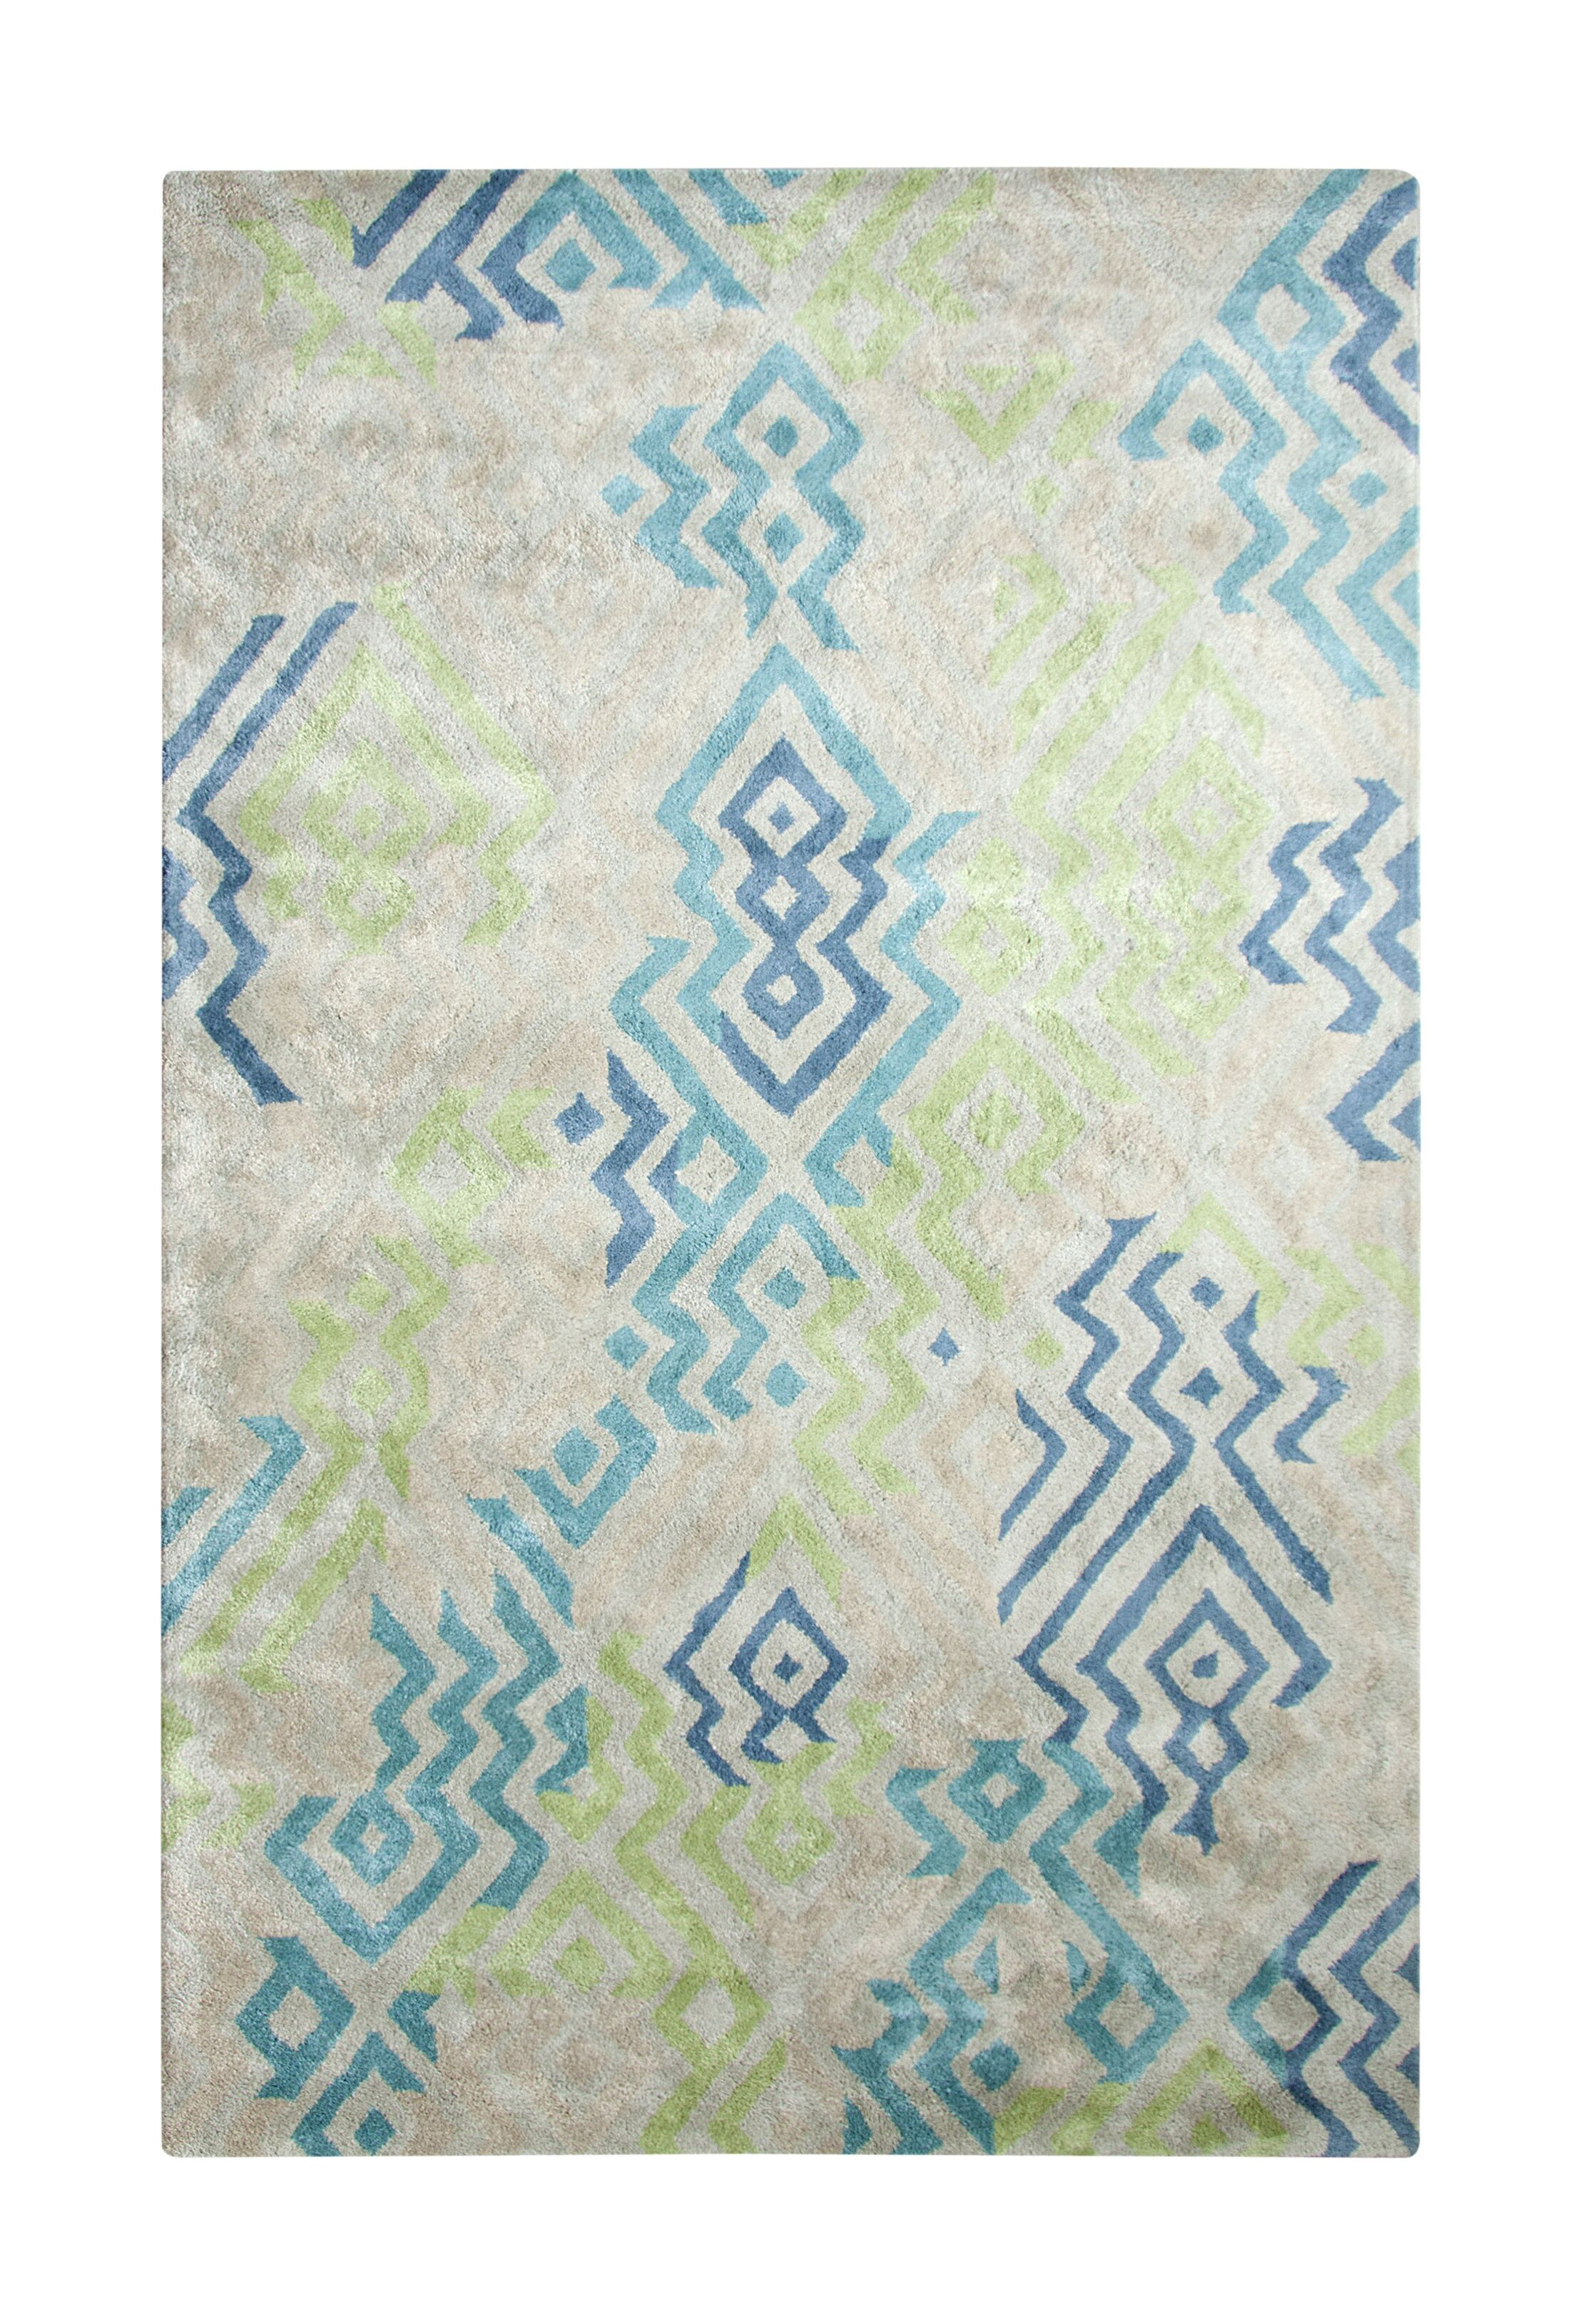 Vogue Hand Woven Blue/Gray Area Rug Rug Size: Rectangle 4' x 6'